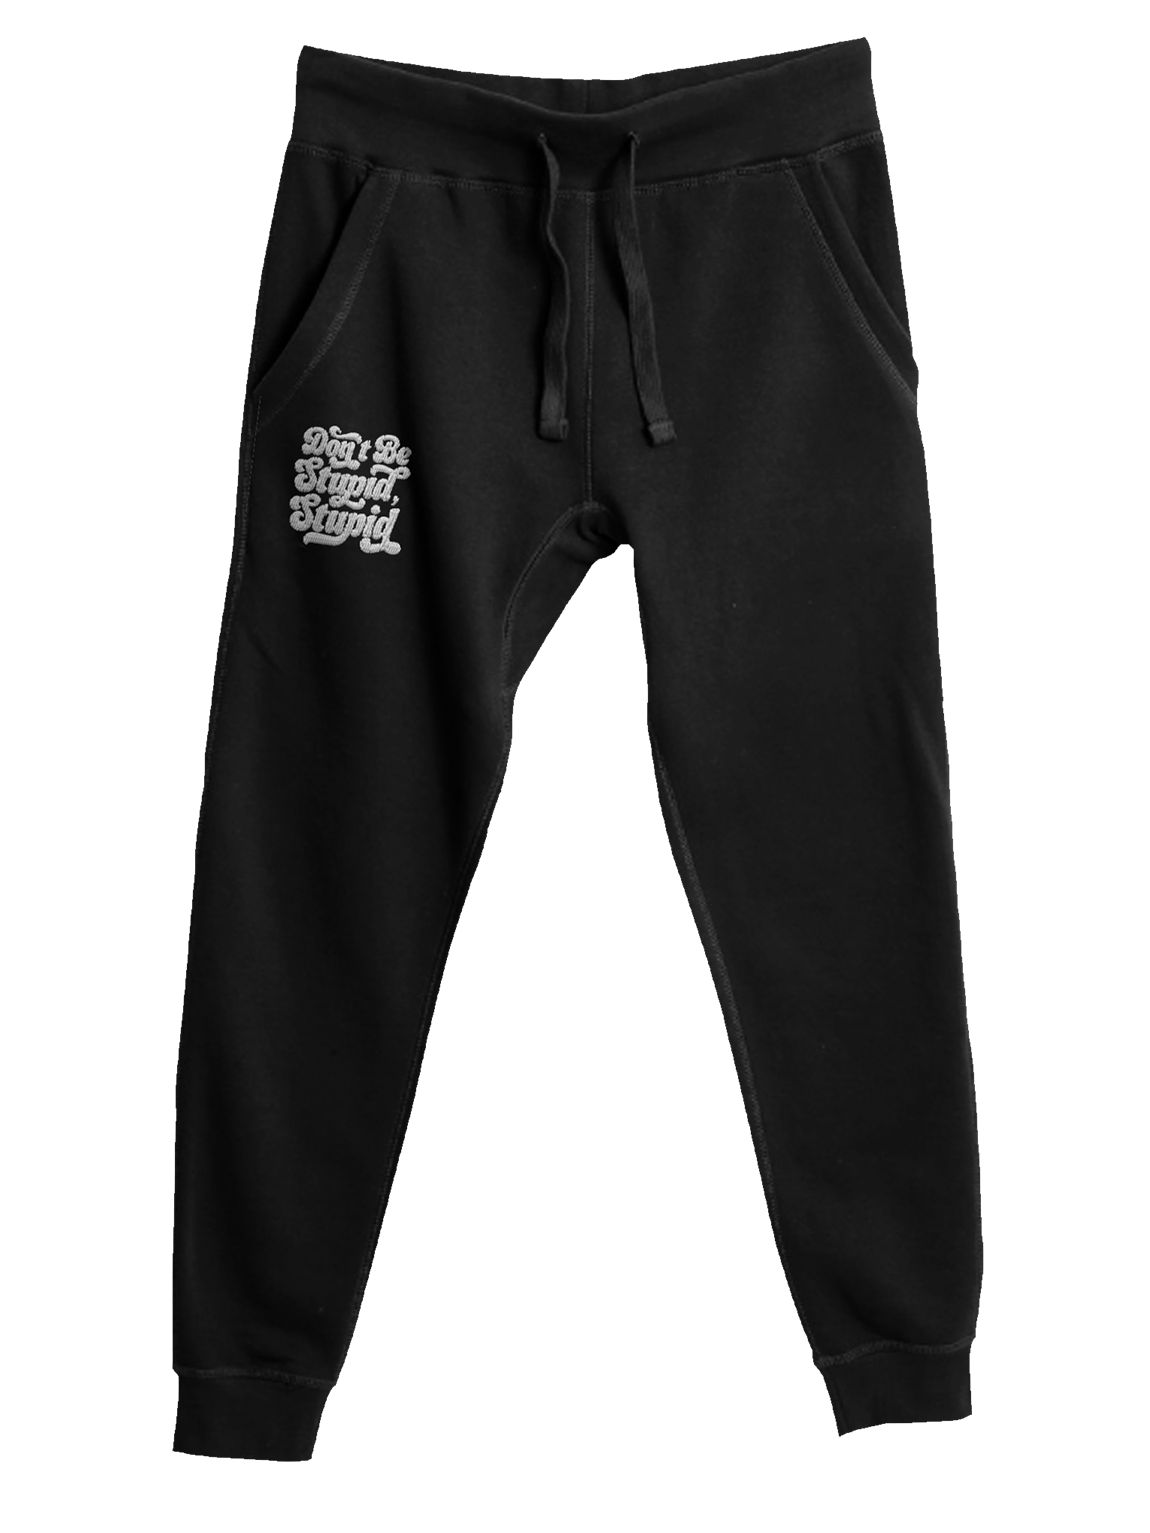 DON'T BE STUPID, STUPID EVERYDAY JOGGER product image (1)